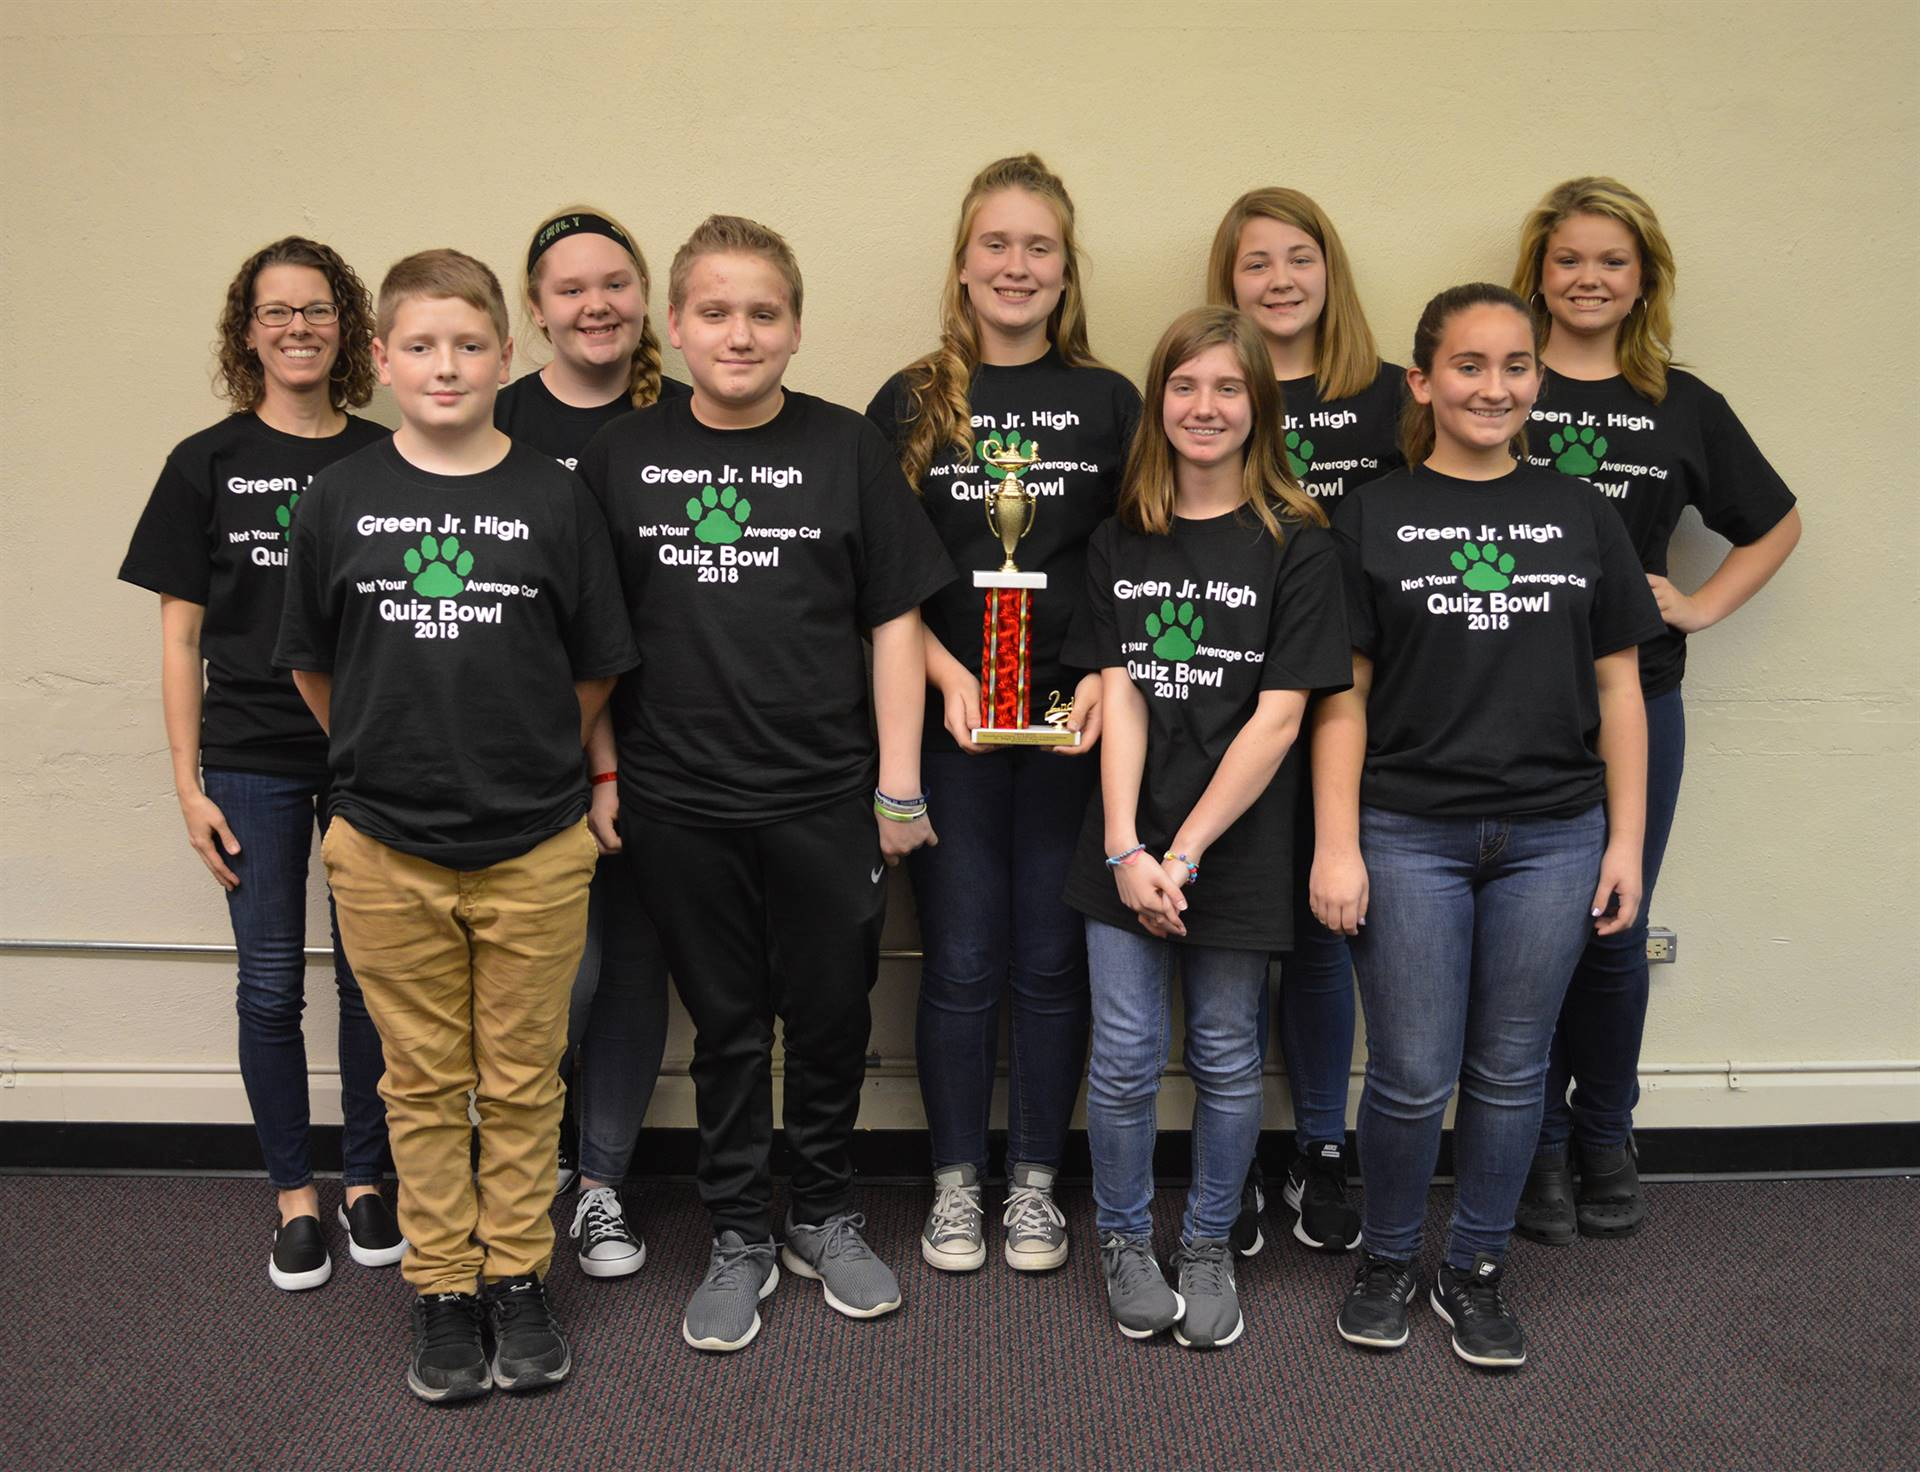 2018 Junior High Quiz Bowl